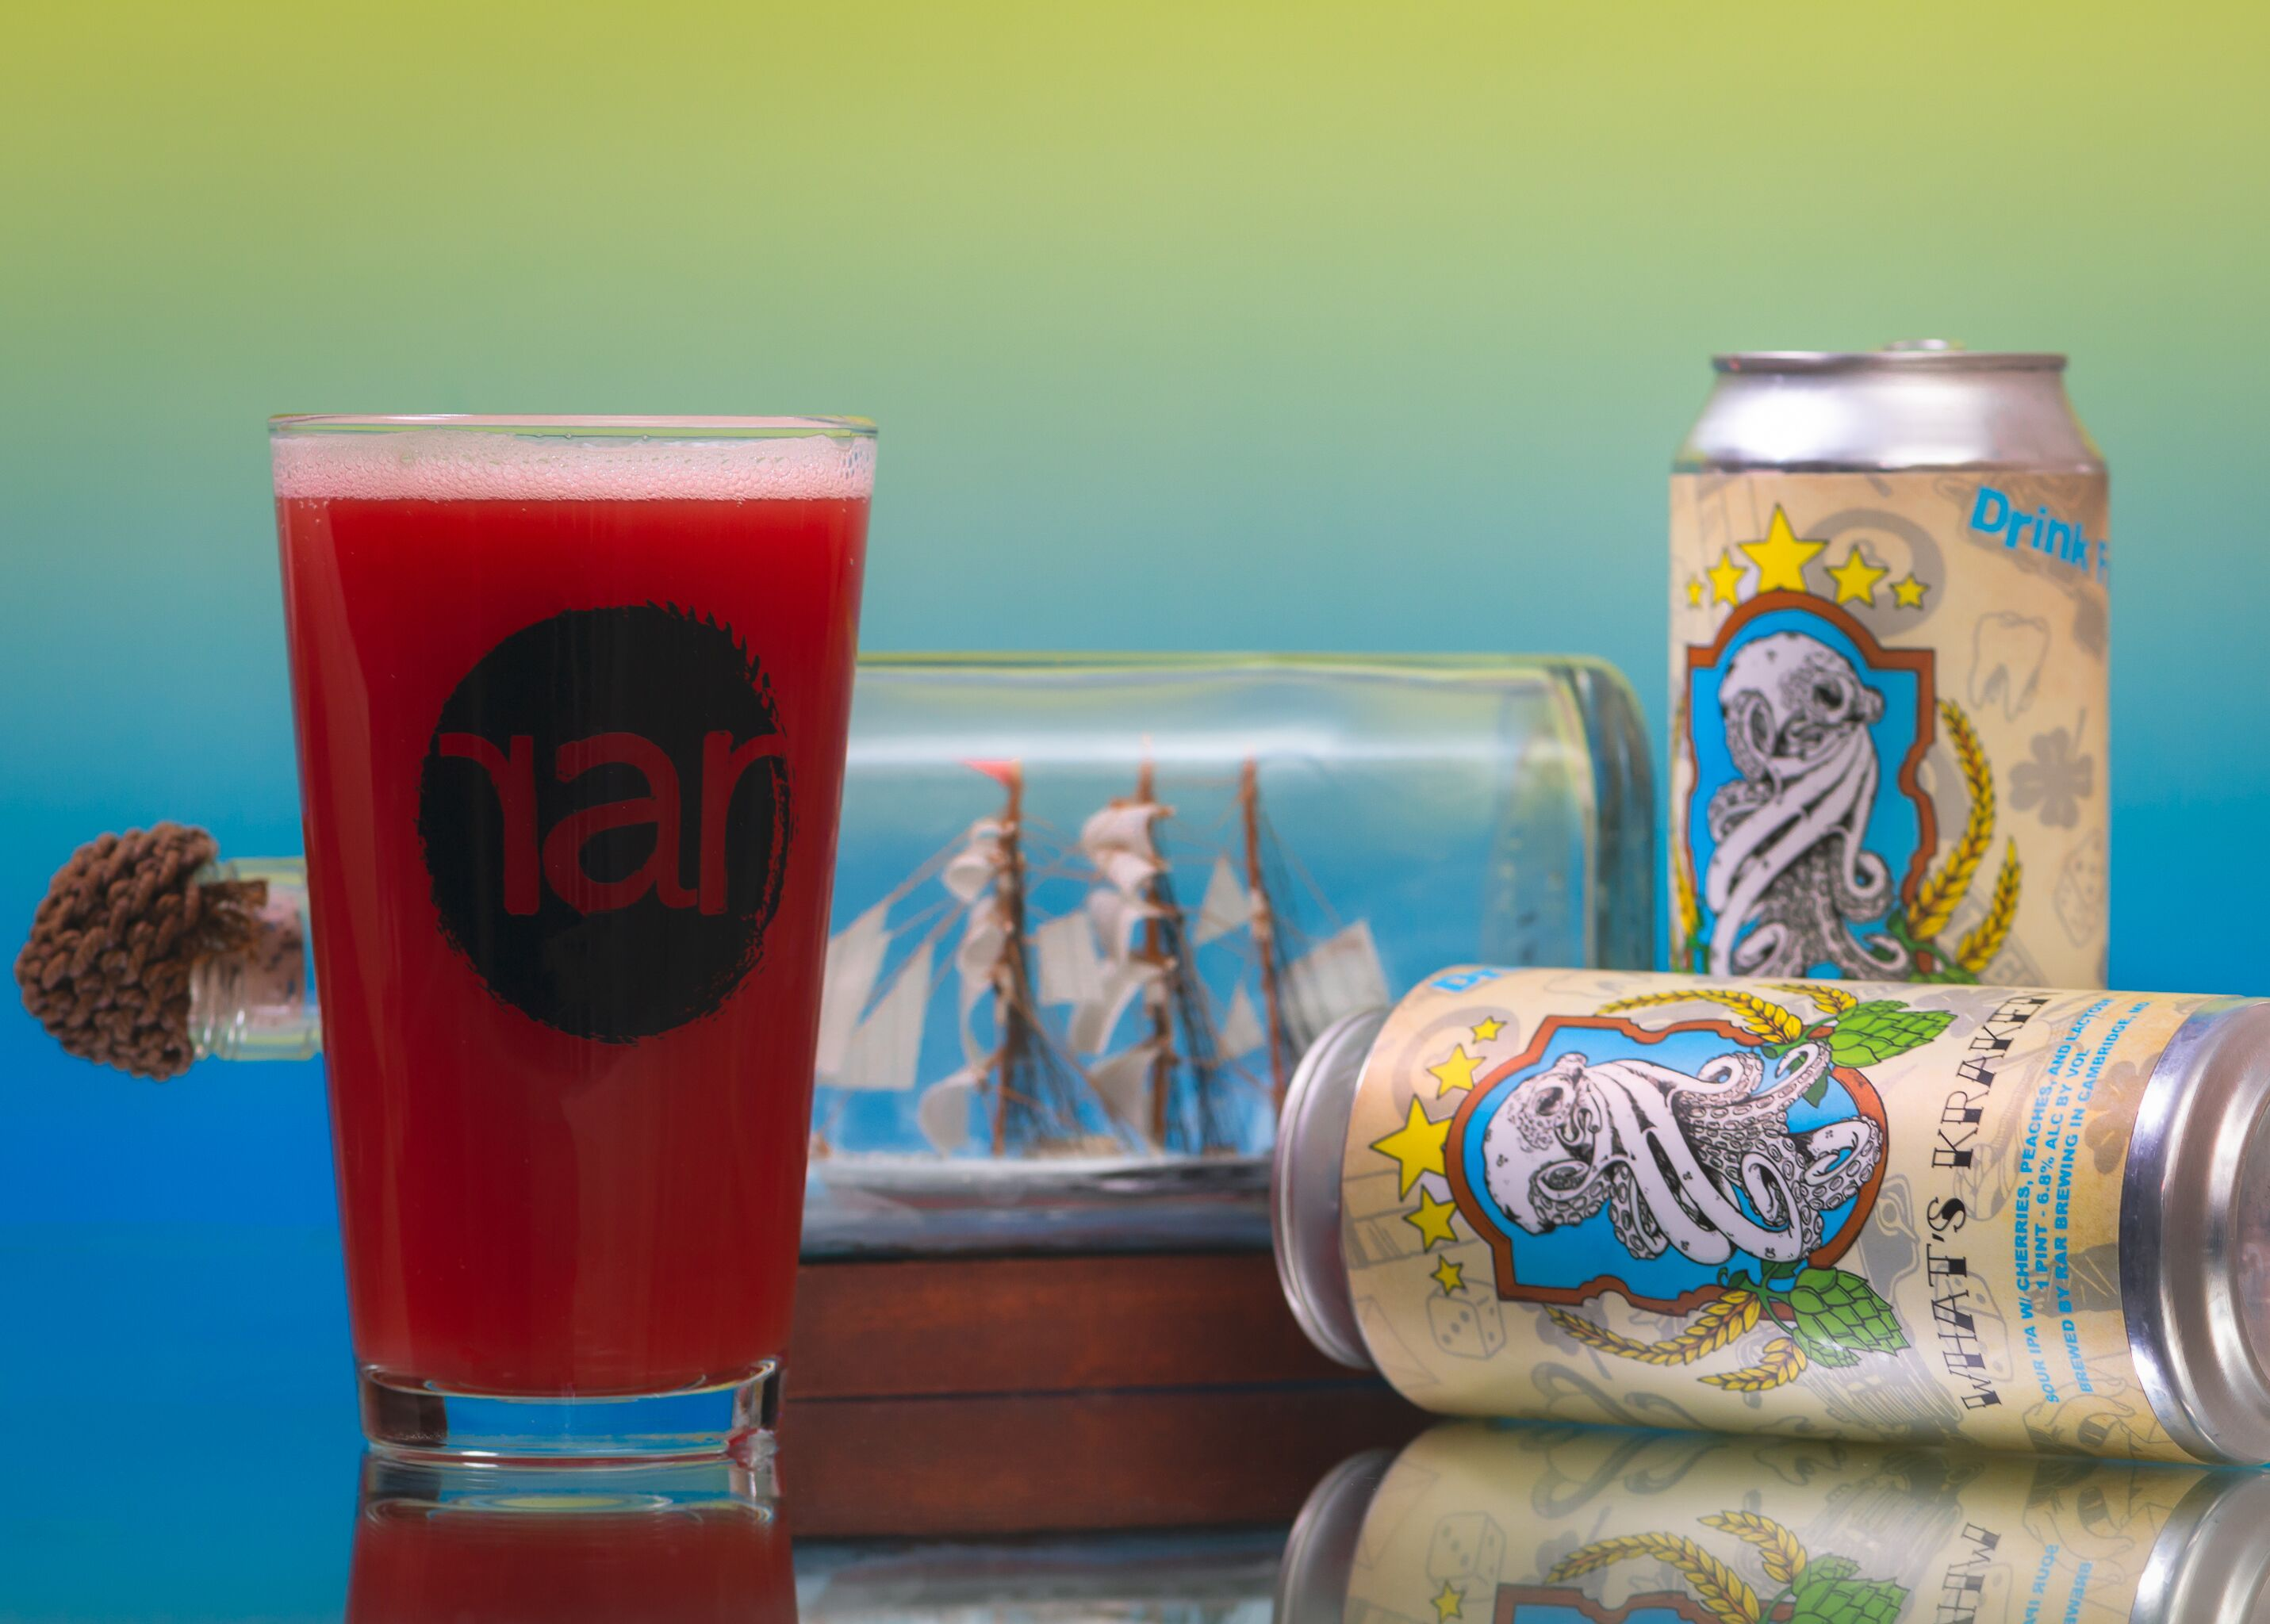 RAR Brewing Art of Craft Beer Labels